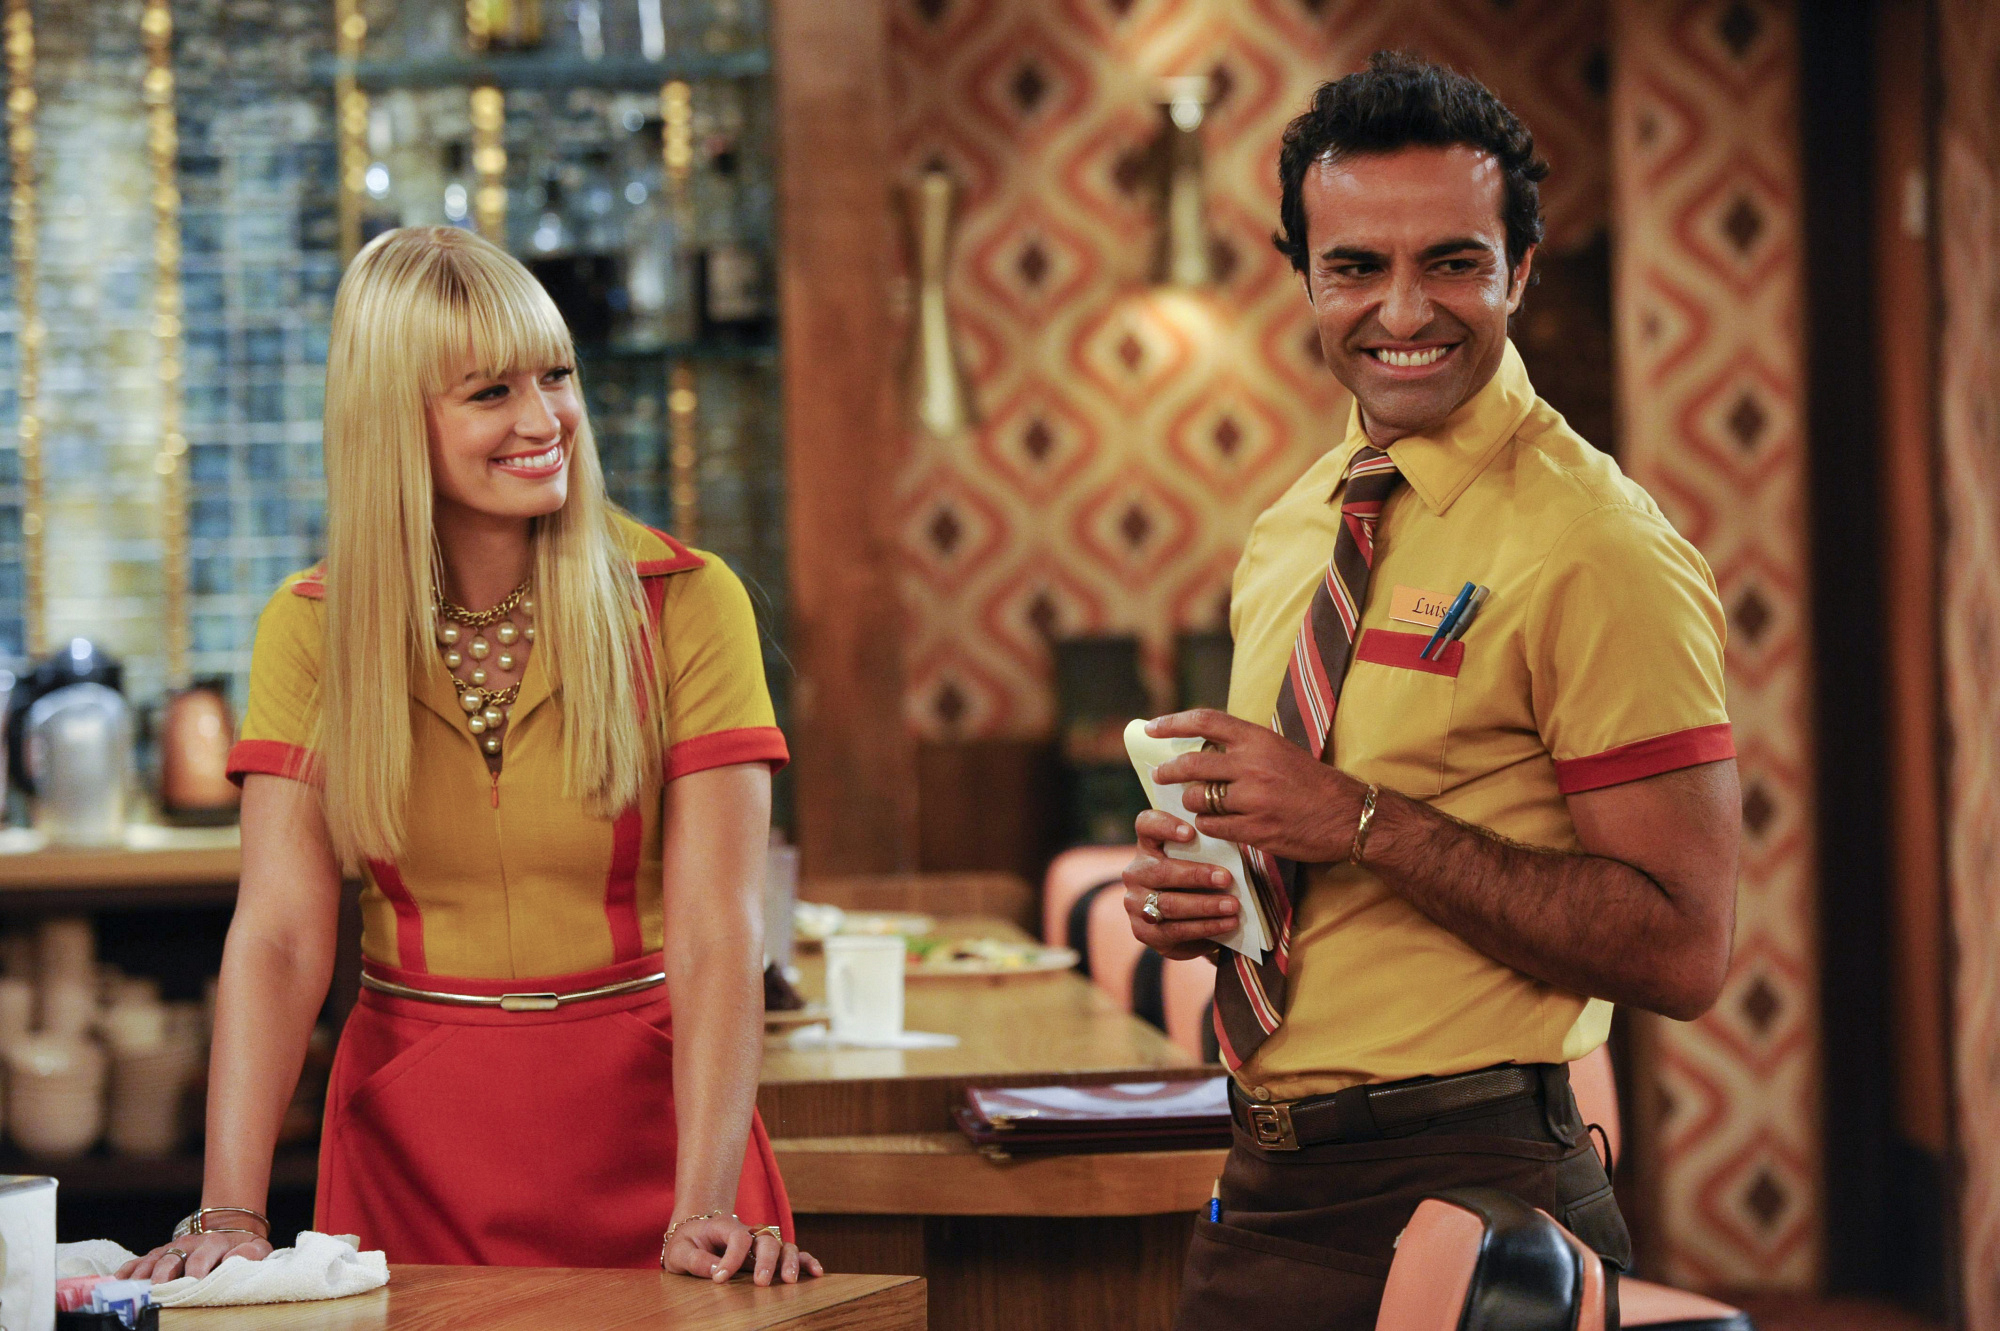 8. Caroline & Luis - 2 Broke Girls